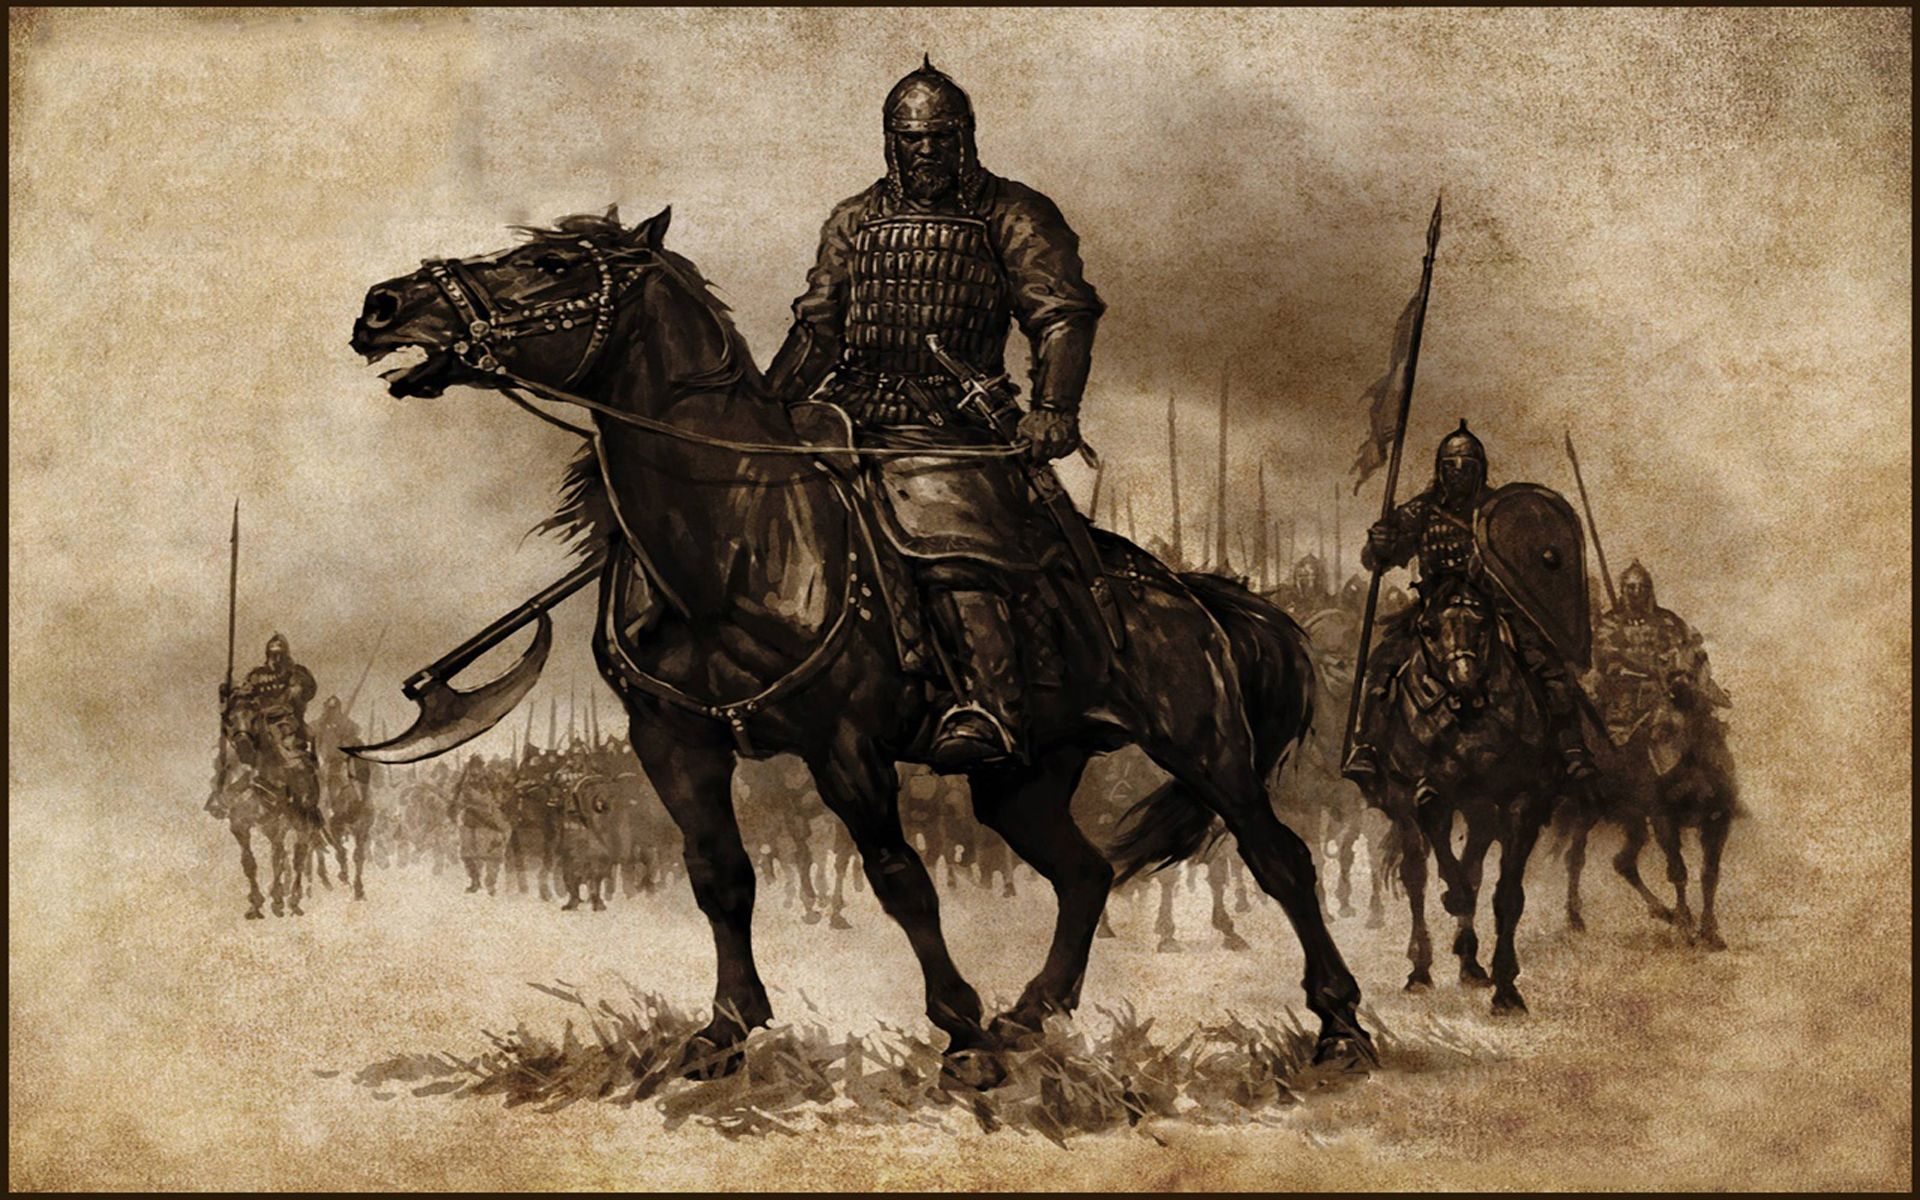 Mount And Blade Warband Wallpaper Mount Blade Horse Wallpaper Knight On Horse